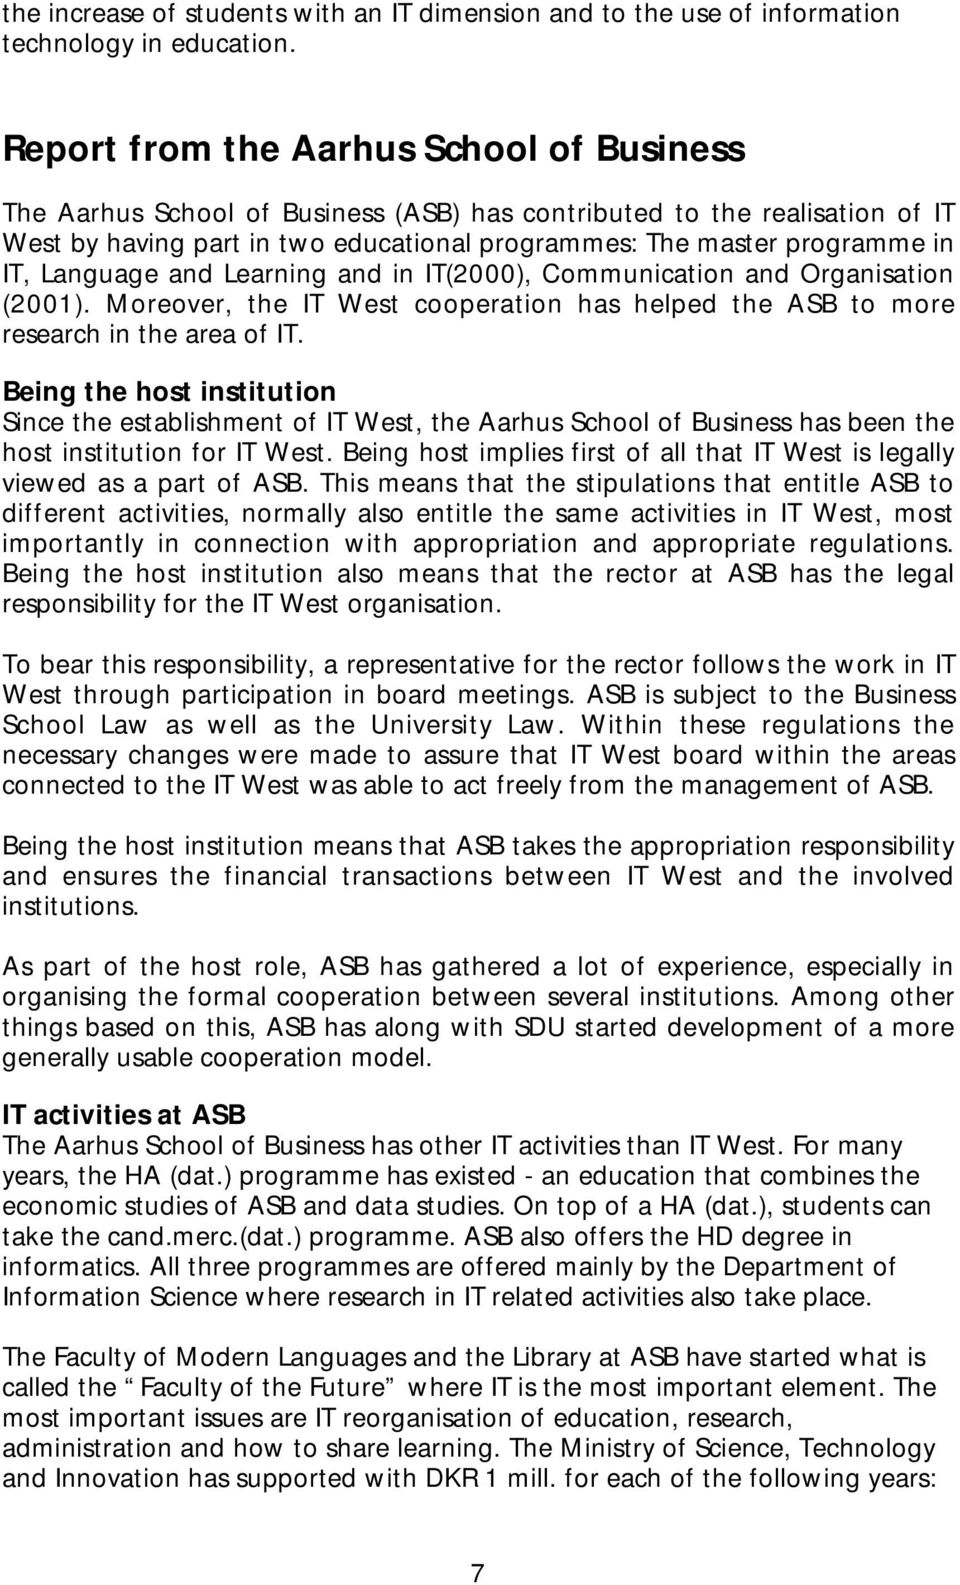 Language and Learning and in IT(2000), Communication and Organisation (2001). Moreover, the IT West cooperation has helped the ASB to more research in the area of IT.